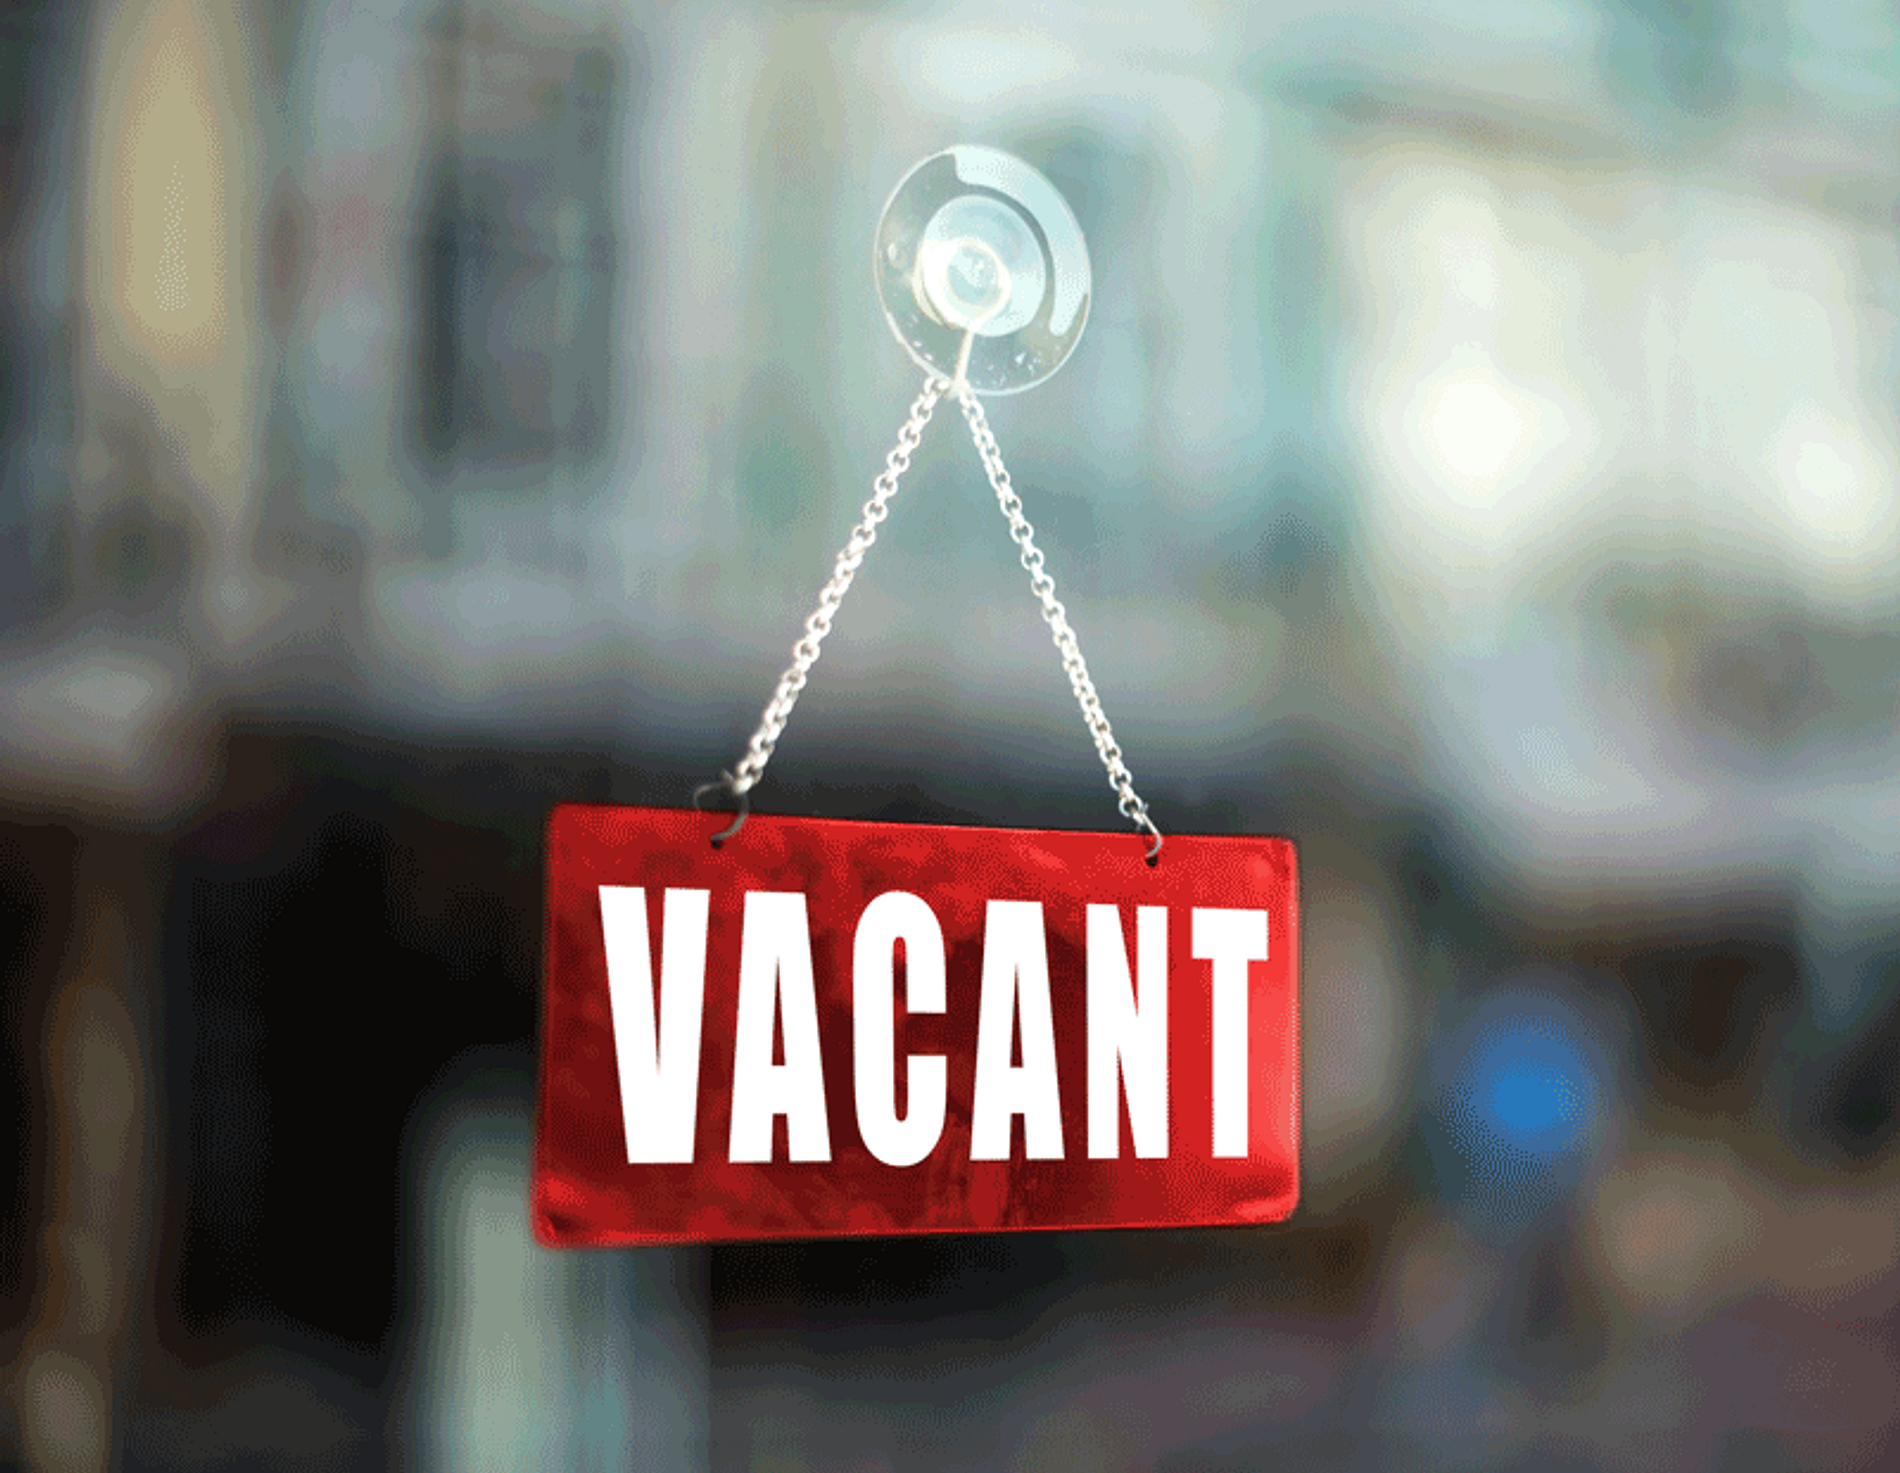 Vacant sign